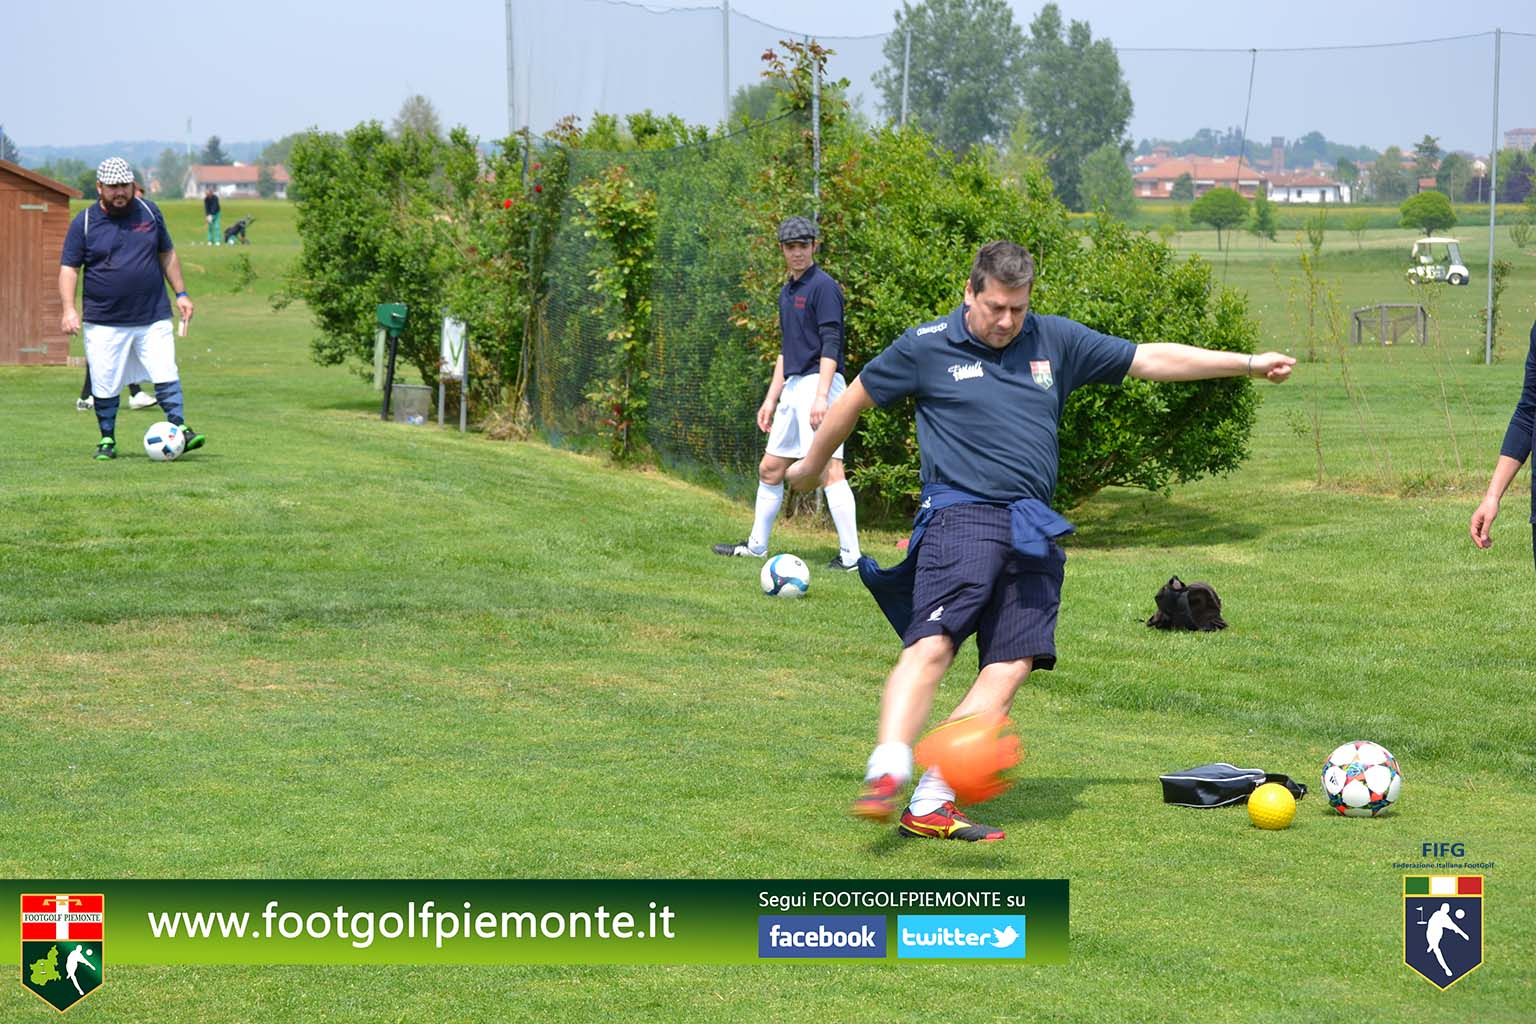 FOTO 9 Regions' Cup Footgolf Piemonte 2016 Golf Città di Asti (At) 30apr16-71